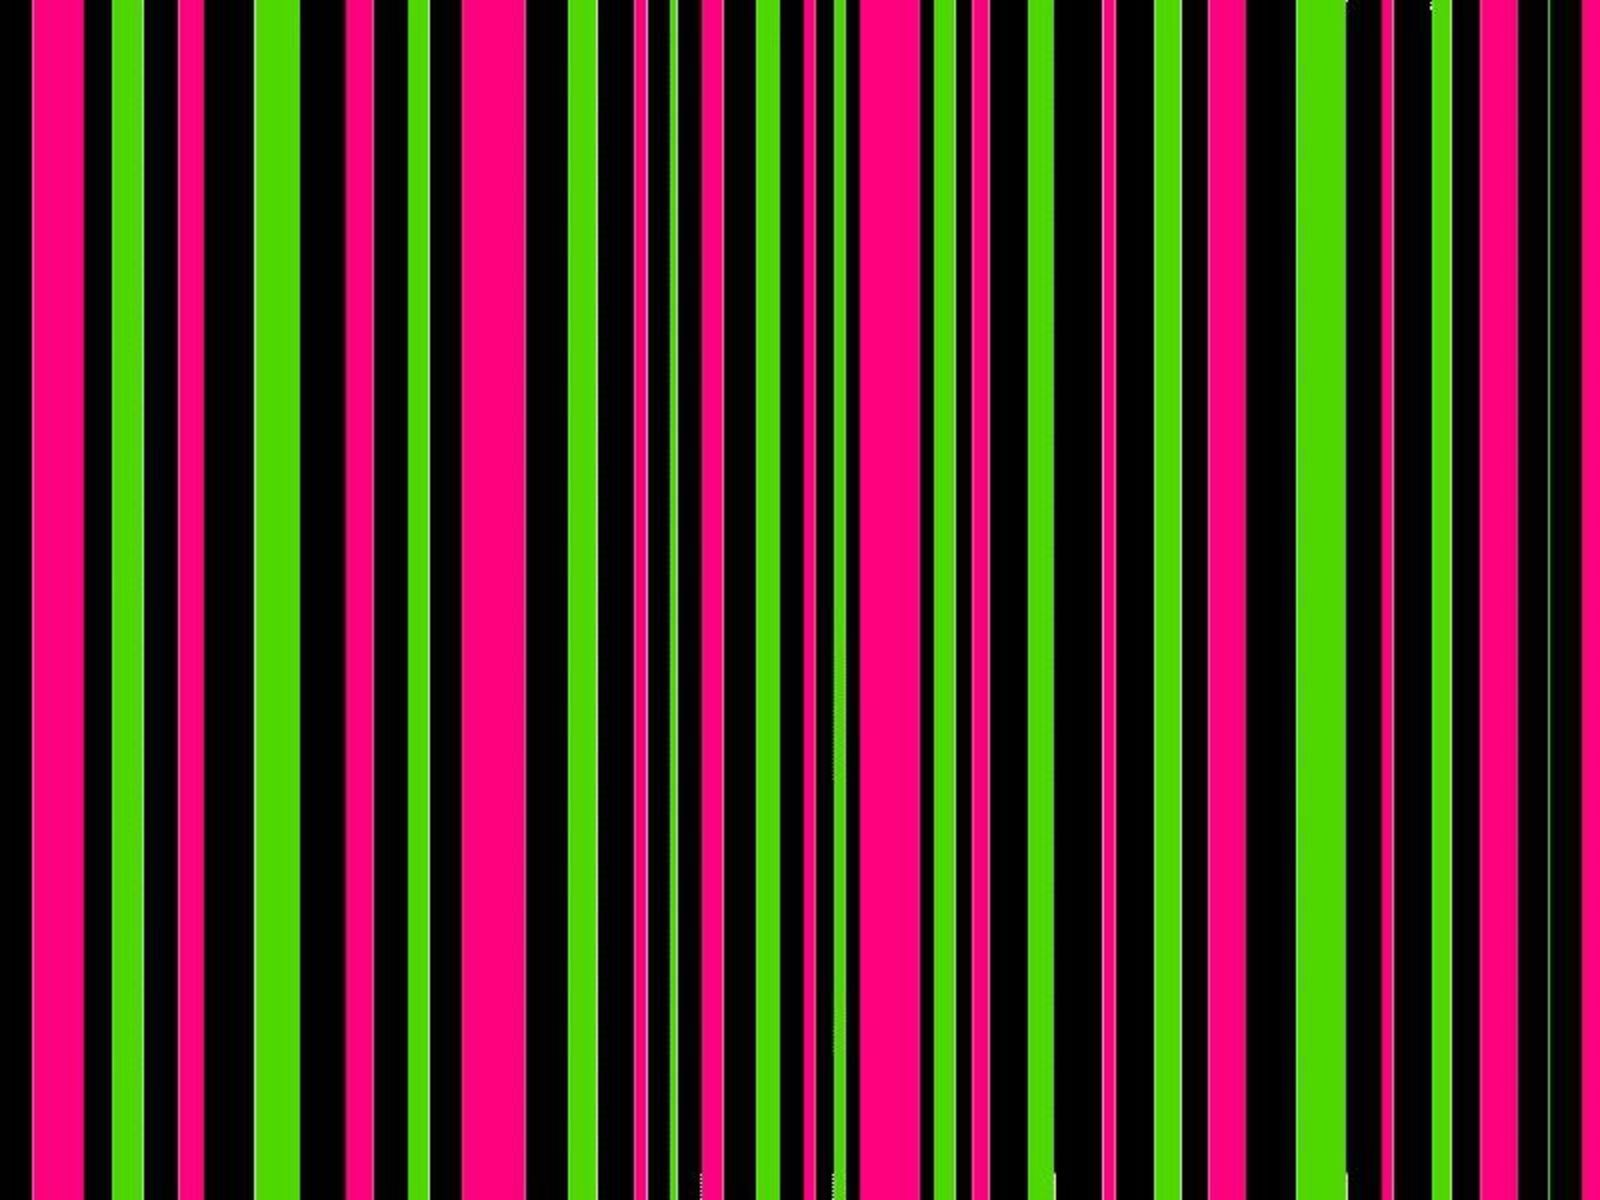 Neon Colors Rock images Stripes HD wallpaper and 1600x1200